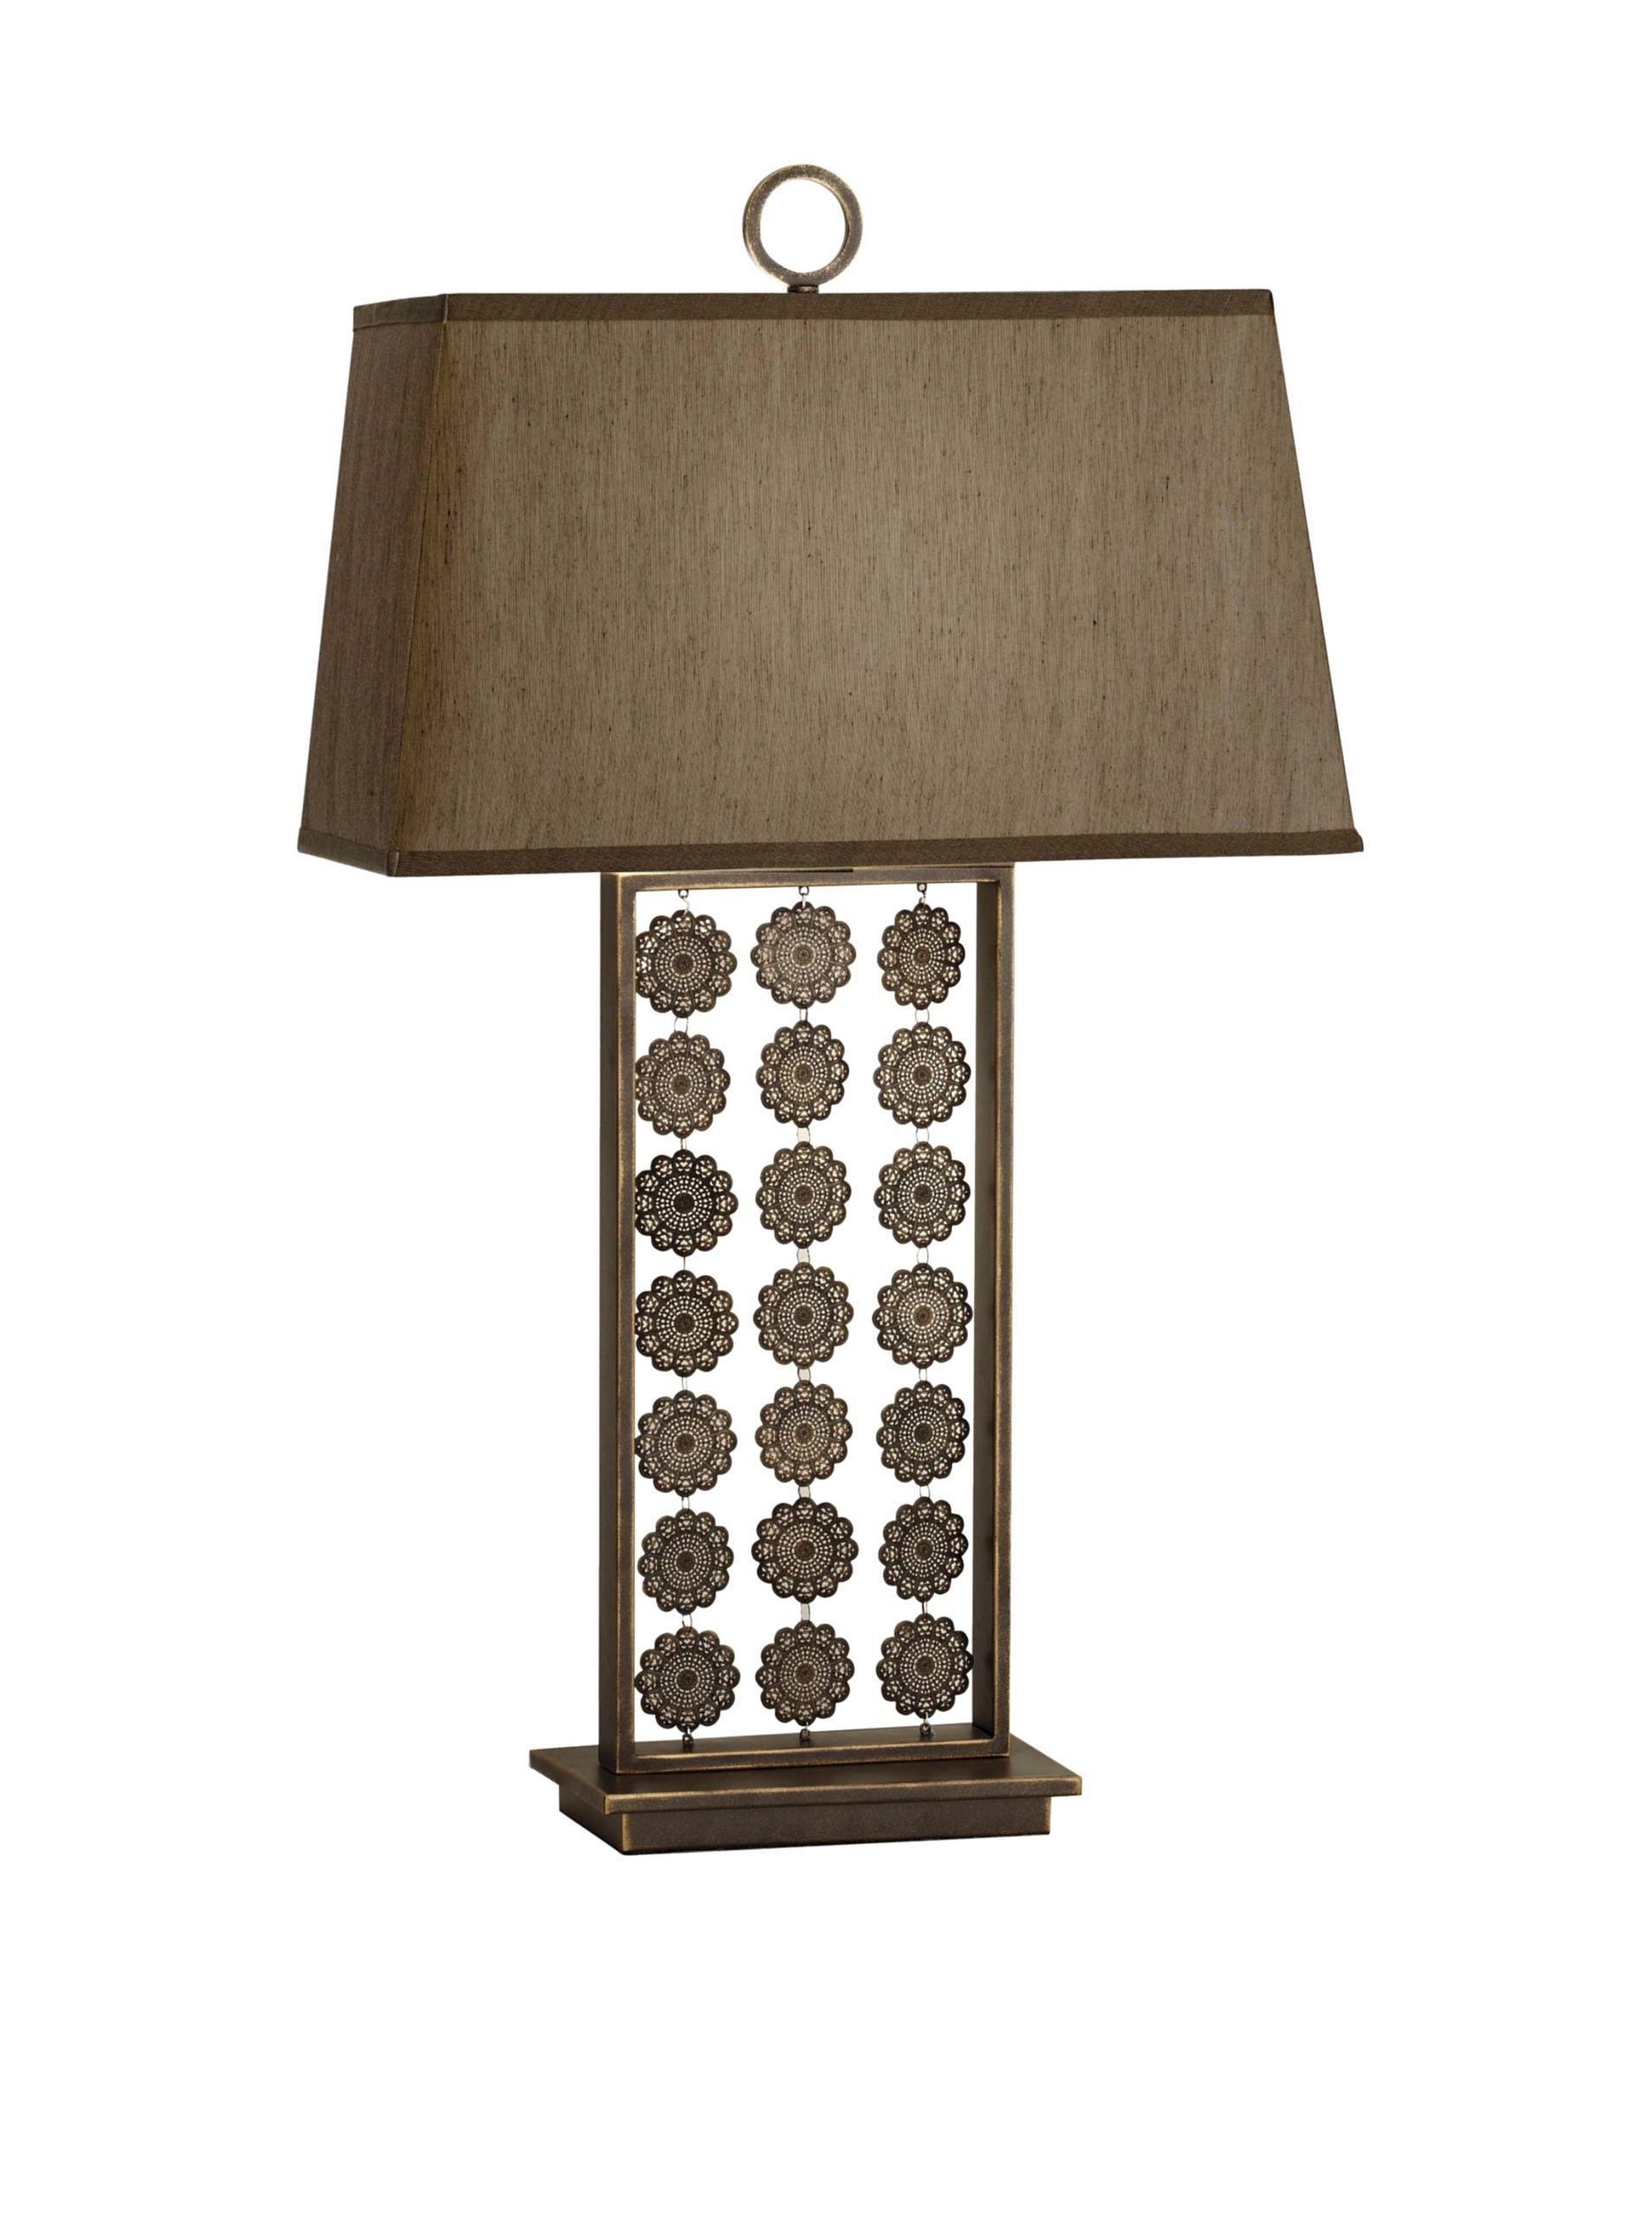 Feiss Independents Table Lamp Twist Switch Open Base With Disc Embellishment Requires 100 Watt Max 3 Way Type A Bulb Not Included Lig Lamp Table Lamp Decor Lamp with switch on base